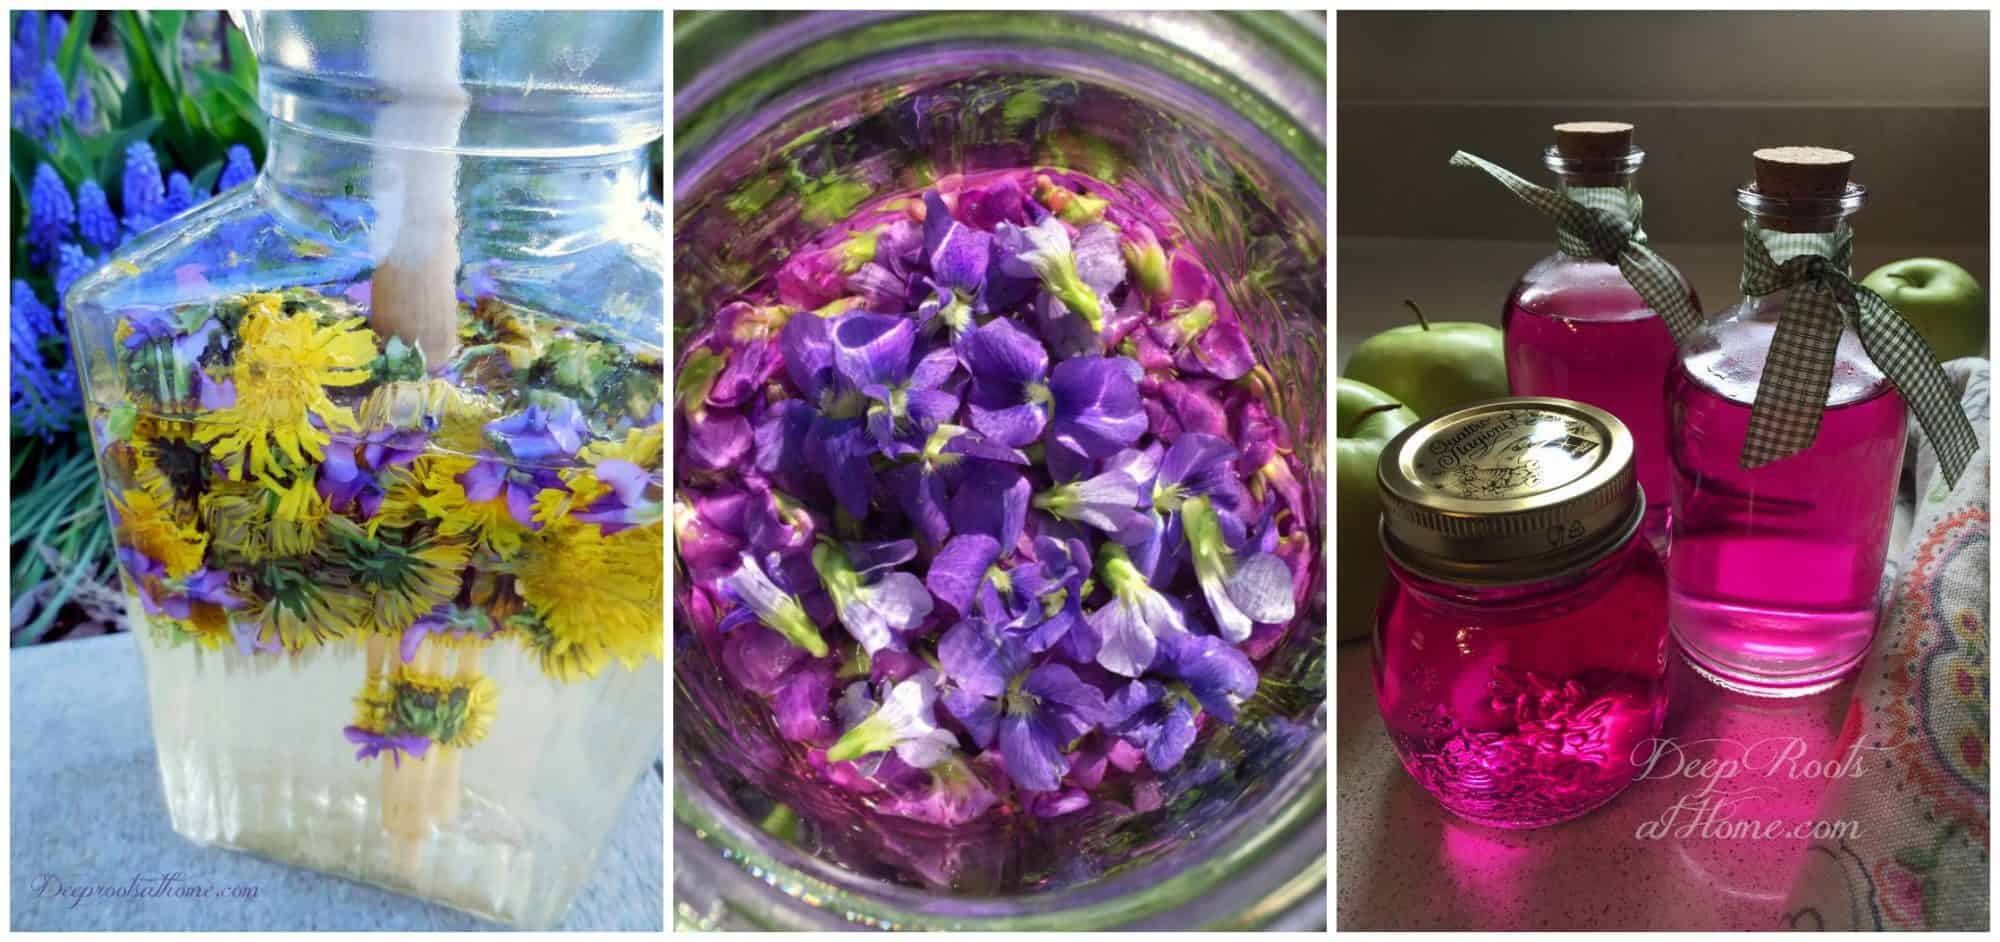 dandelion violet lemonade and violet vinegar